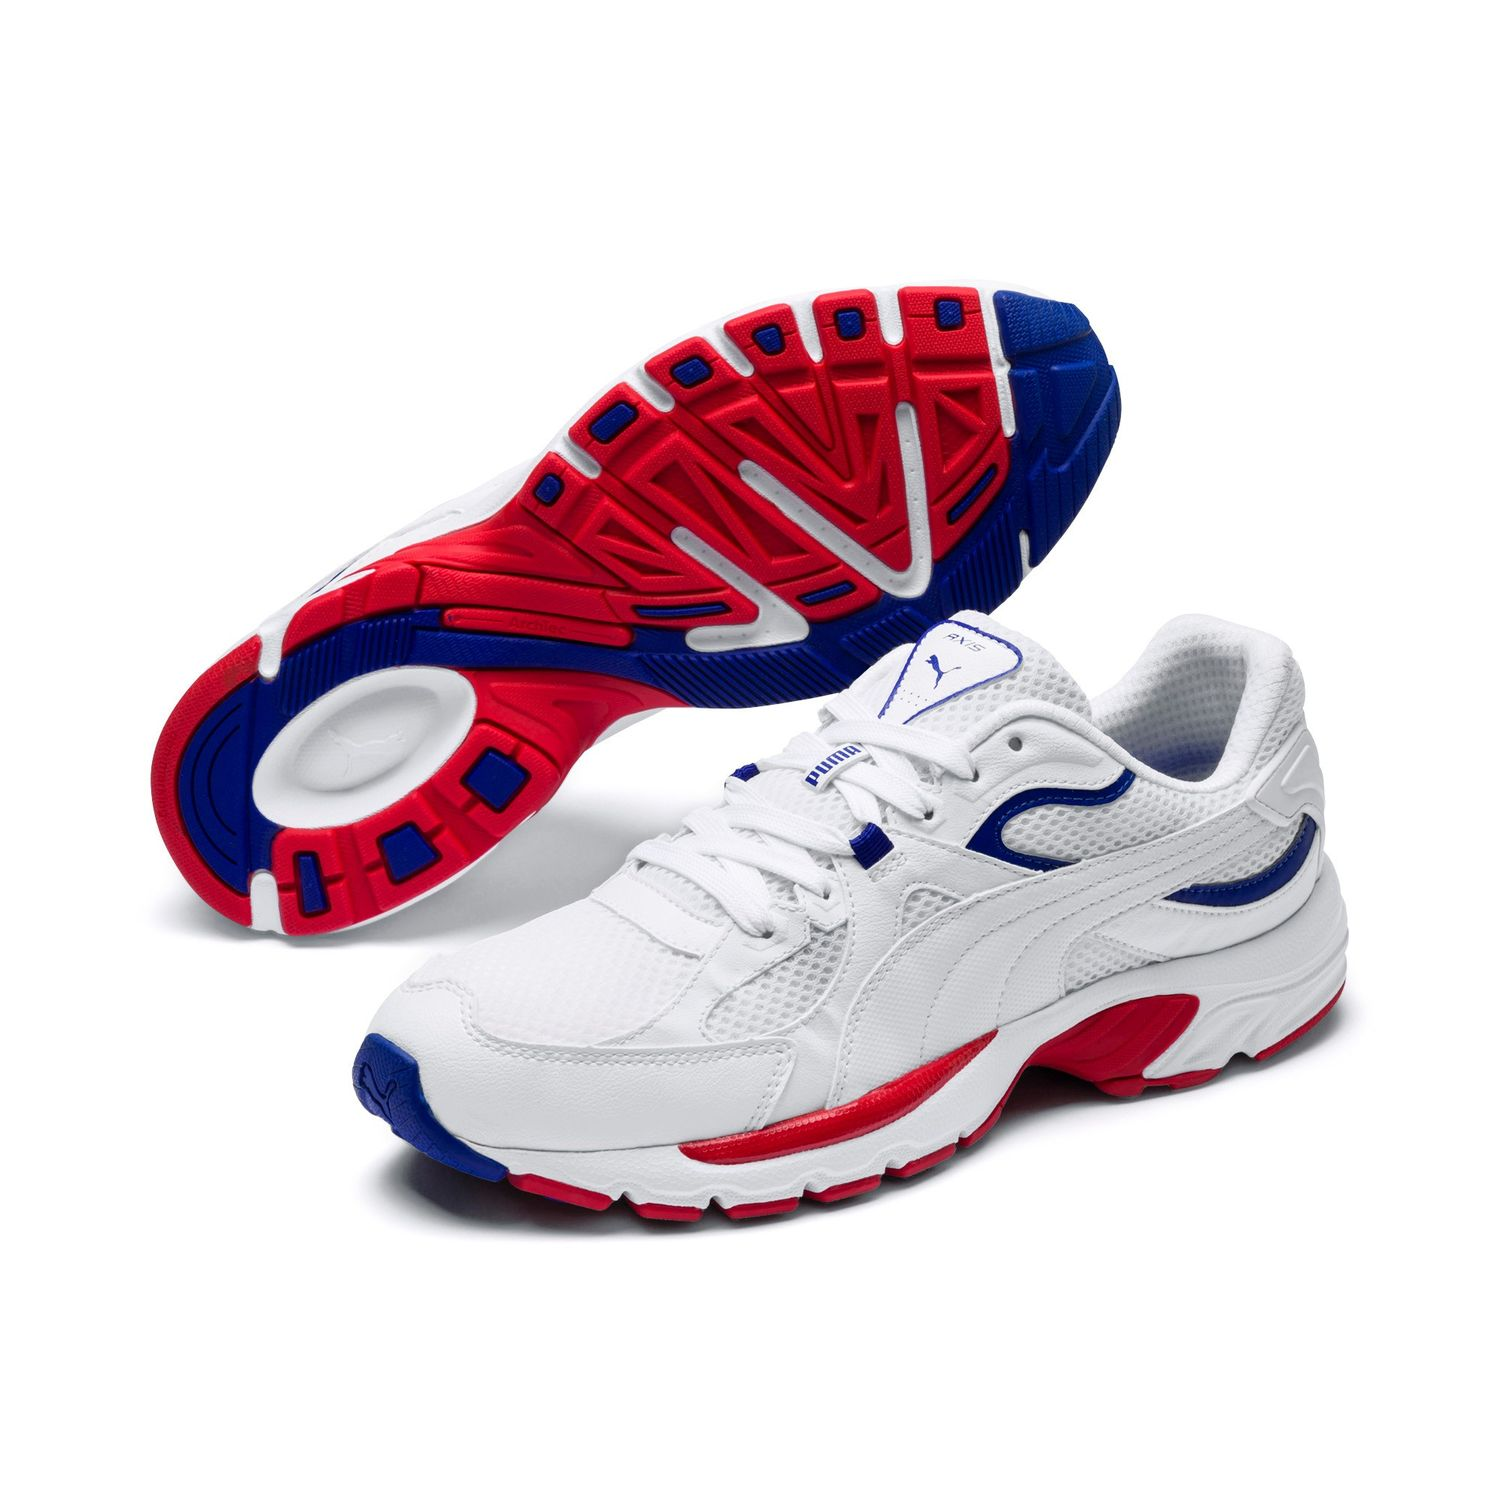 Puma Axis Plus 90s Unisex Fitness Shoes